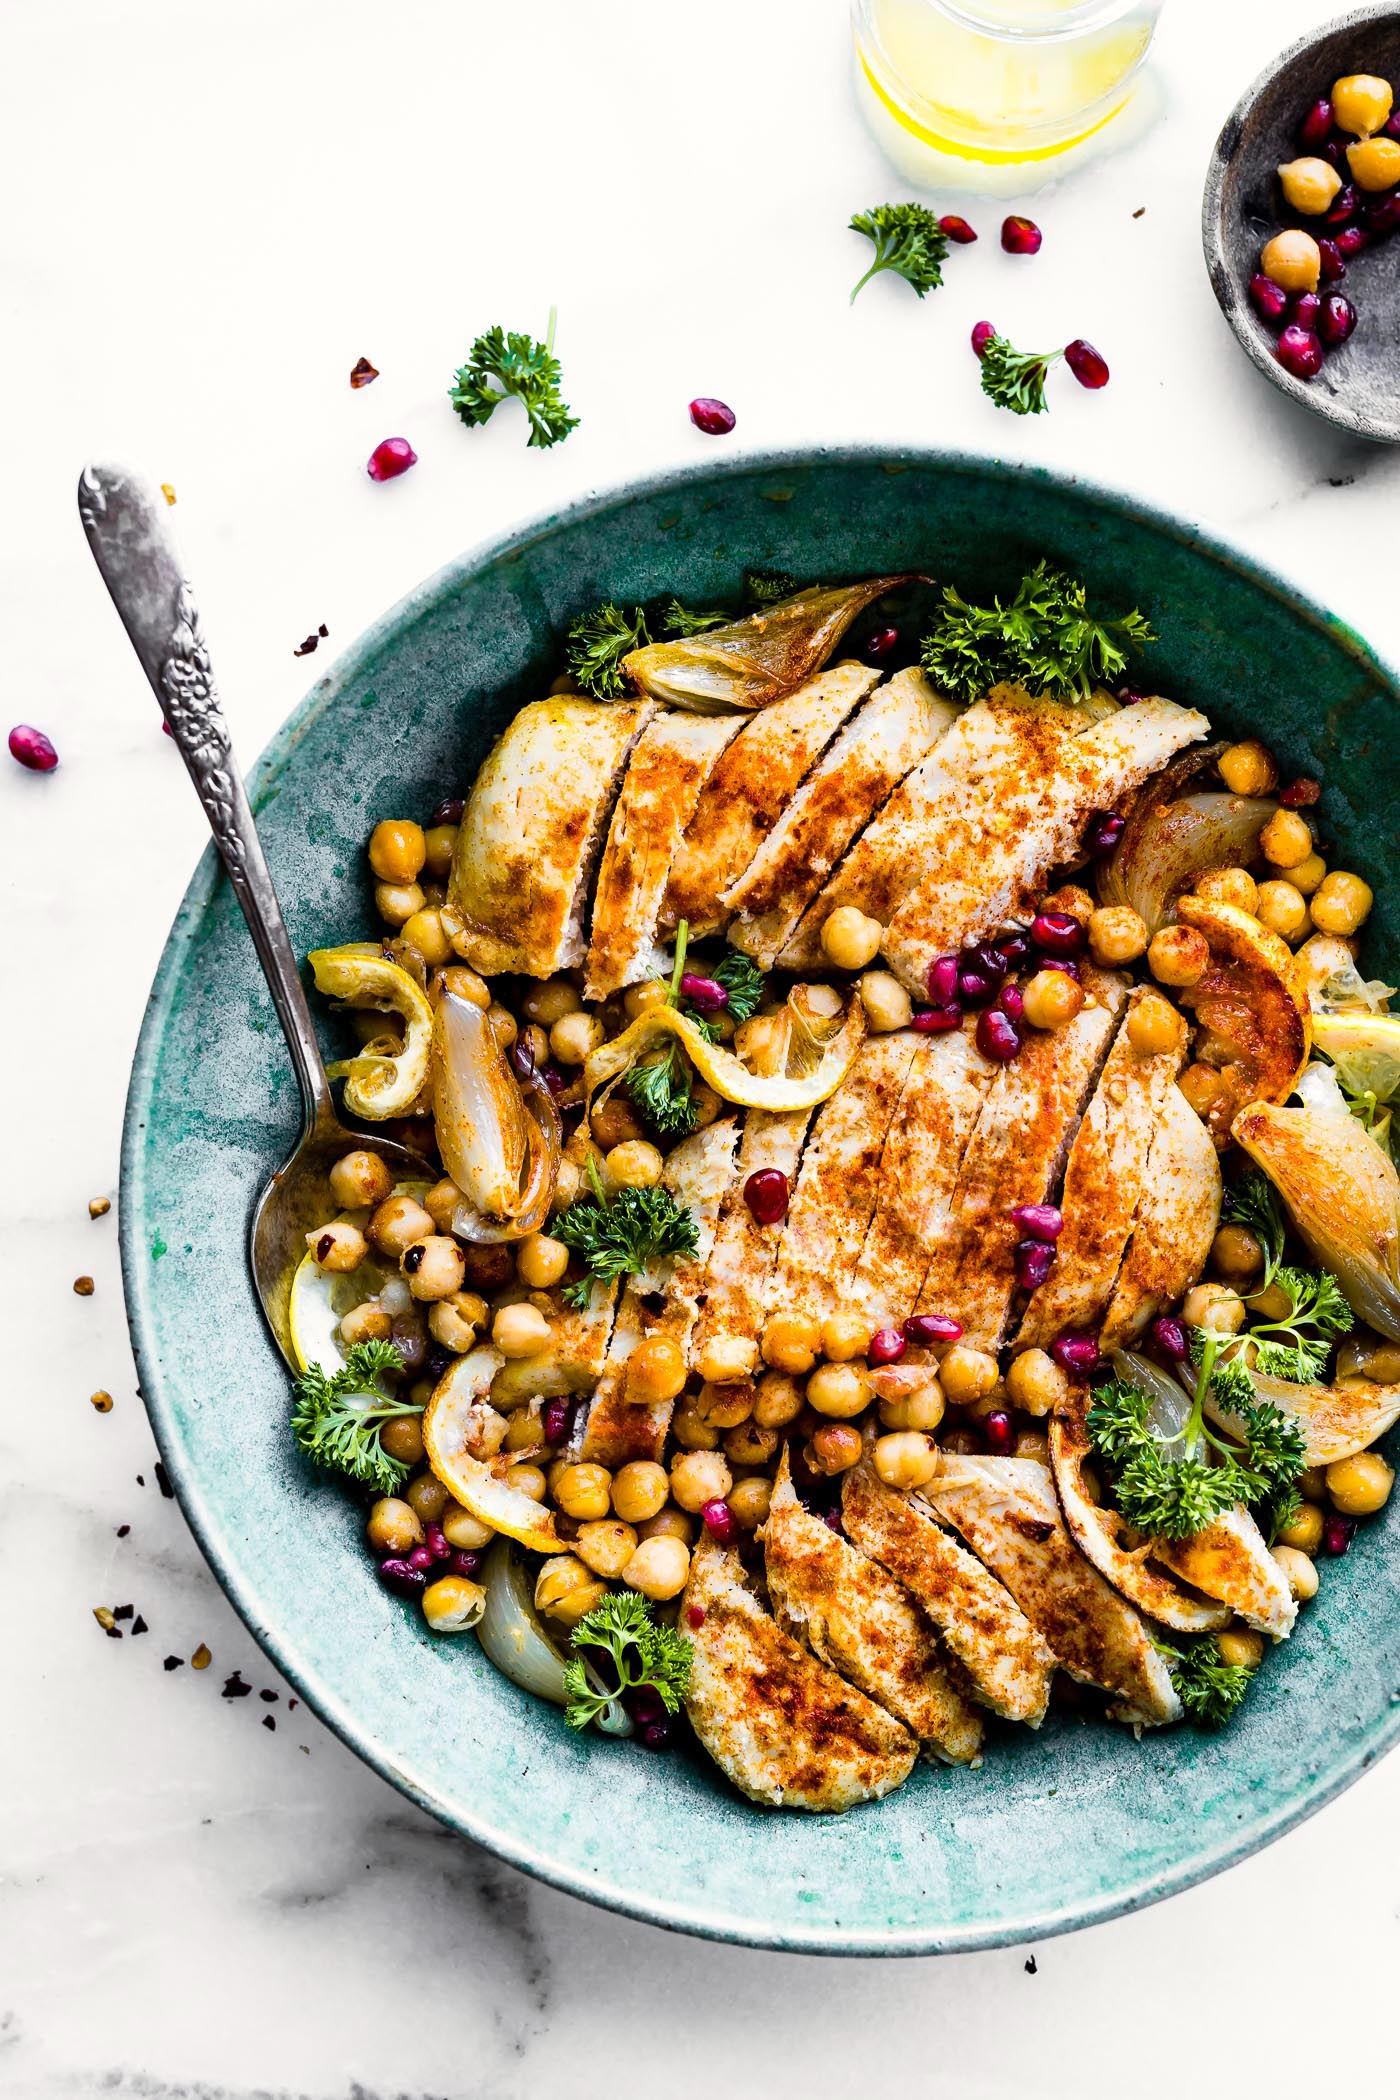 Cumin roasted chickpea chicken bowls are a gluten free weeknight dinner, packed with wholesome goodness and nutrition! This easy one pan meal combines tangy citrus and honey marinated chicken and roasted chickpeas into a delicious, easy baked chicken dinner recipe to love.